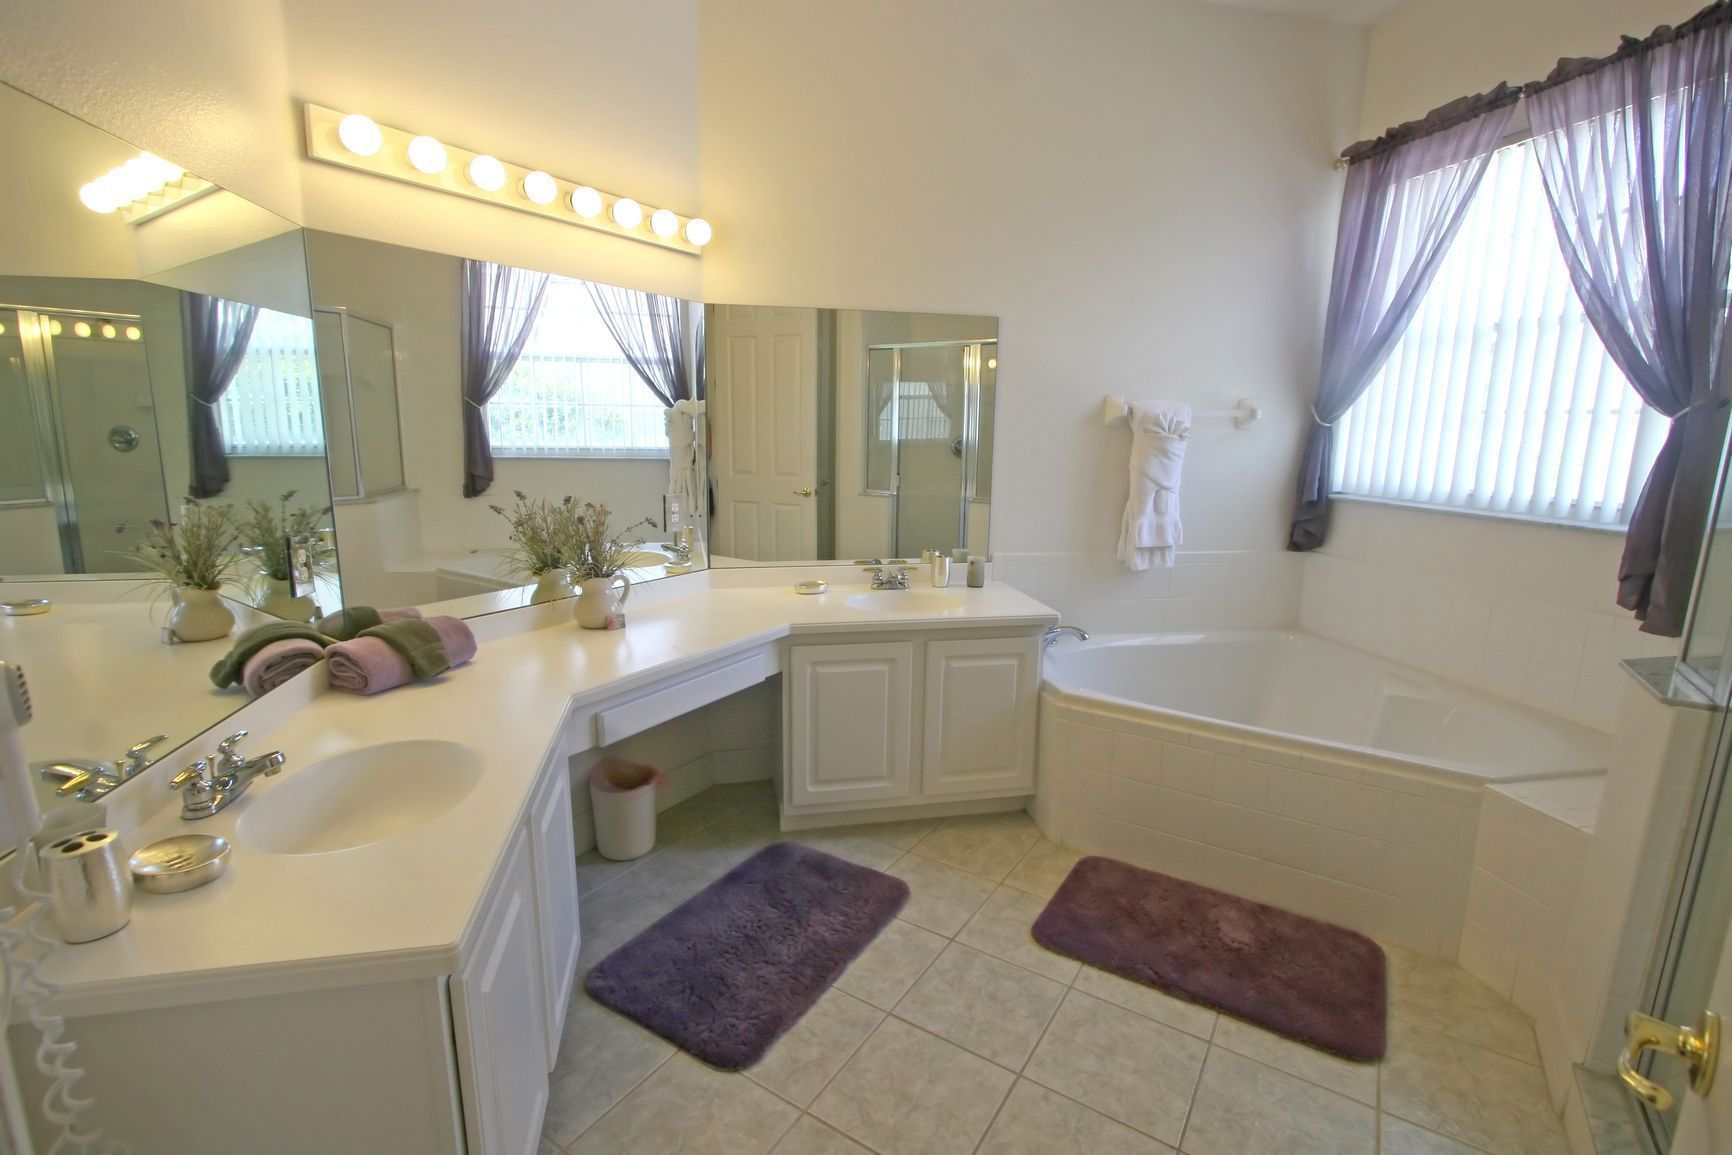 100+ Cost Renovate Small Bathroom - Favorite Interior Paint Colors Cost To Renovate A Bathroom on cost basement bathroom, cost to remodel bathroom, cost to update bathroom,